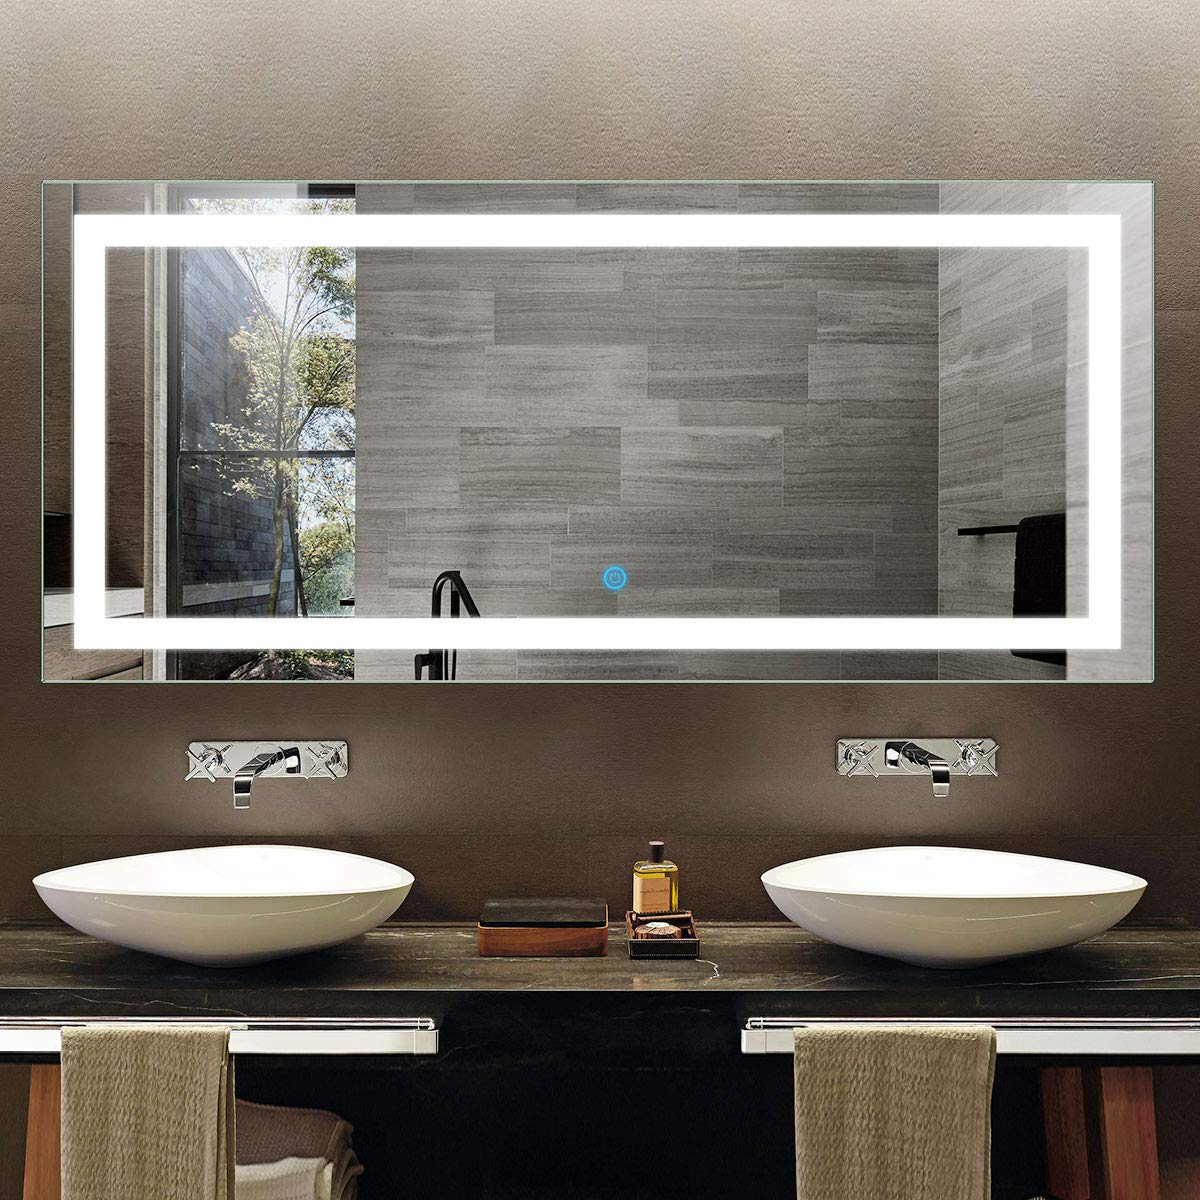 Most Recent Large Modern Lighted Wall Mounted Bathroom Vanity Mirror, Led Frameless Backlit Illuminated Wall Mirror, Rectangle Horizontally White Mirrors For With Backlit Bathroom Wall Mirrors (View 9 of 20)